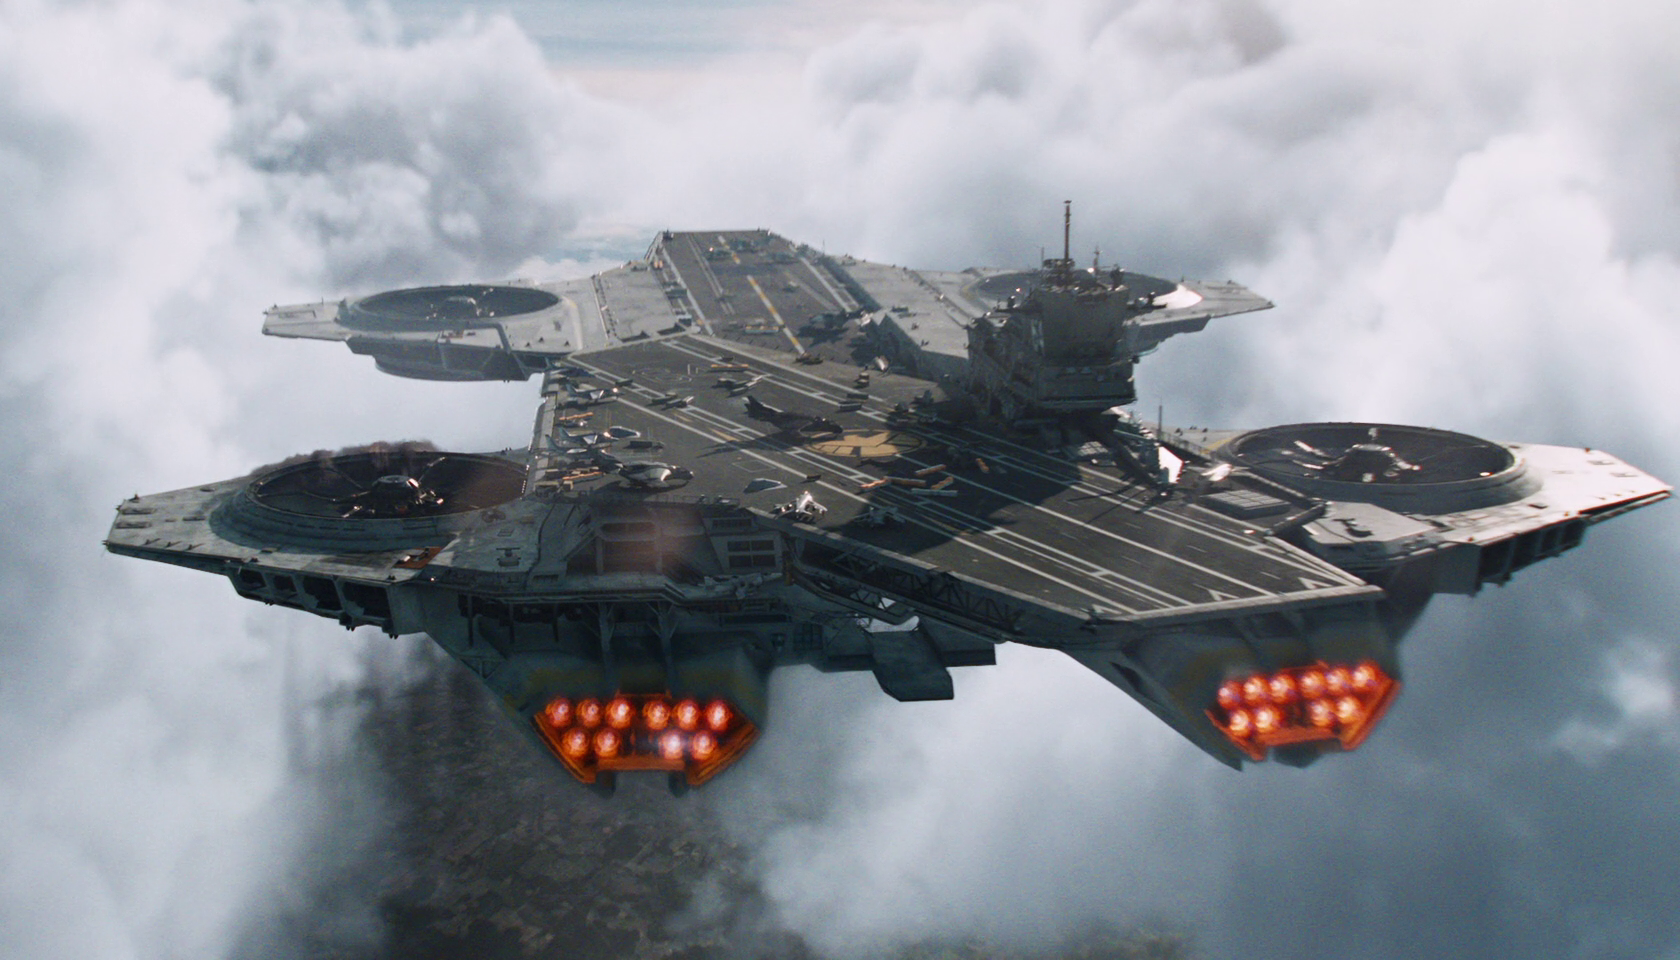 S.H.I.E.L.D. Helicarrier | Disney Wiki | Fandom powered by Wikia